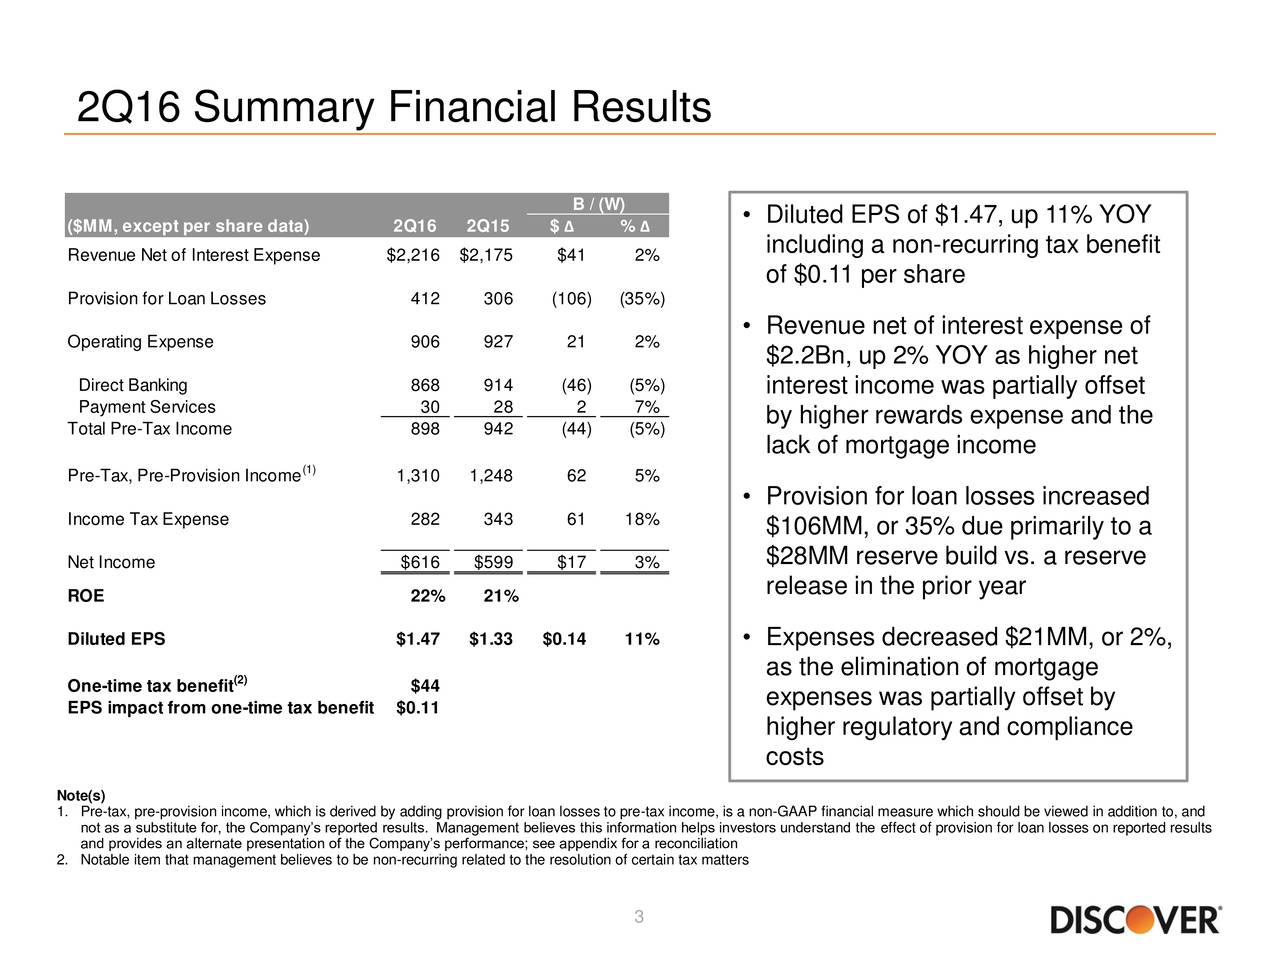 B / (W) ($MM, except per share data) 2Q16 2Q15 $  %   Diluted EPS of $1.47, up 11% YOY including a non-recurring tax benefit Revenue Net of Interest Expense $2,216 $2,175 $41 2% of $0.11 per share Provision for Loan Losses 412 306 (106) (35%) Revenue net of interest expense of Operating Expense 906 927 21 2% $2.2Bn, up 2% YOY as higher net Direct Banking 868 914 (46) (5%) interest income was partially offset Payment Services 30 28 2 7% Total Pre-Tax Income 898 942 (44) (5%) by higher rewards expense and the lack of mortgage income Pre-Tax, Pre-Provision Income 1,310 1,248 62 5% Provision for loan losses increased Income Tax Expense 282 343 61 18% $106MM, or 35% due primarily to a Net Income $616 $599 $17 3% $28MM reserve build vs. a reserve release in the prior year ROE 22% 21% Diluted EPS $1.47 $1.33 $0.14 11%  Expenses decreased $21MM, or 2%, (2) as the elimination of mortgage One-time tax benefit $44 EPS impact from one-time tax benefi$0.11 expenses was partially offset by higher regulatory and compliance costs Note(s) 1. Pre-tax, pre-provision income, which is derived by adding provision for loan losses to pre-tax income, is a non-GAAP financial measure which should be viewed in addition to, and not as a substitute for, the Companys reported results. Management believes this information helps investors understand the effect of provision for loan losses on reported results and provides an alternate presentation of the Companys performance; see appendix for a reconciliation 2. Notable item that management believes to be non-recurring related to the resolution of certain tax matters 3